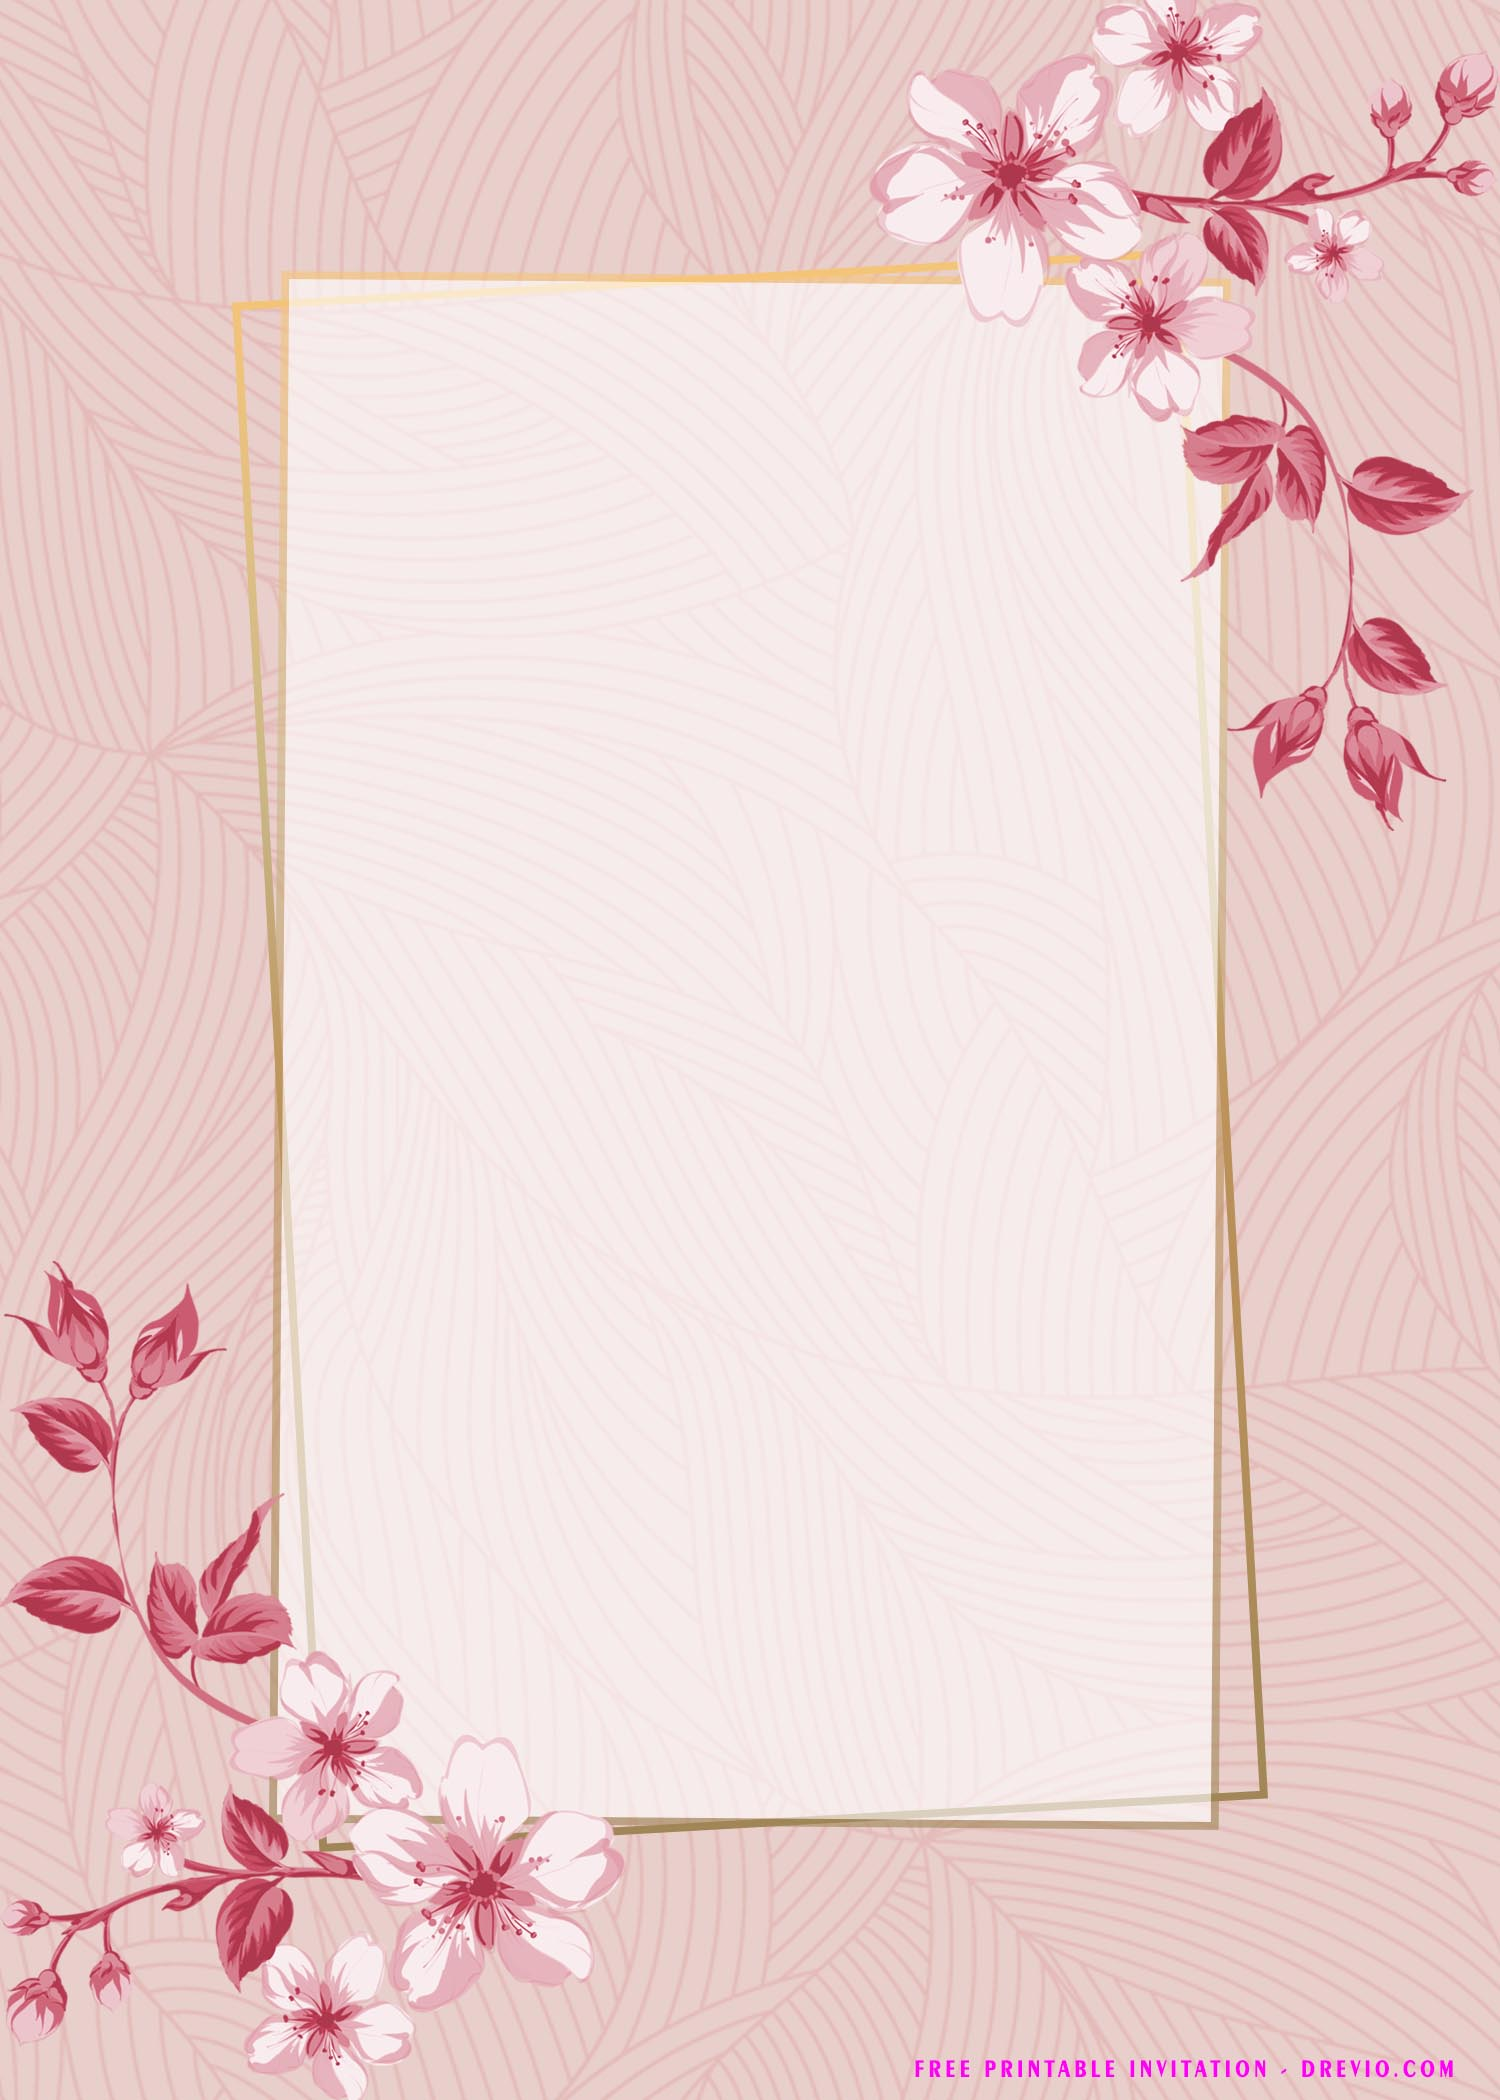 36 floral invitation templates for